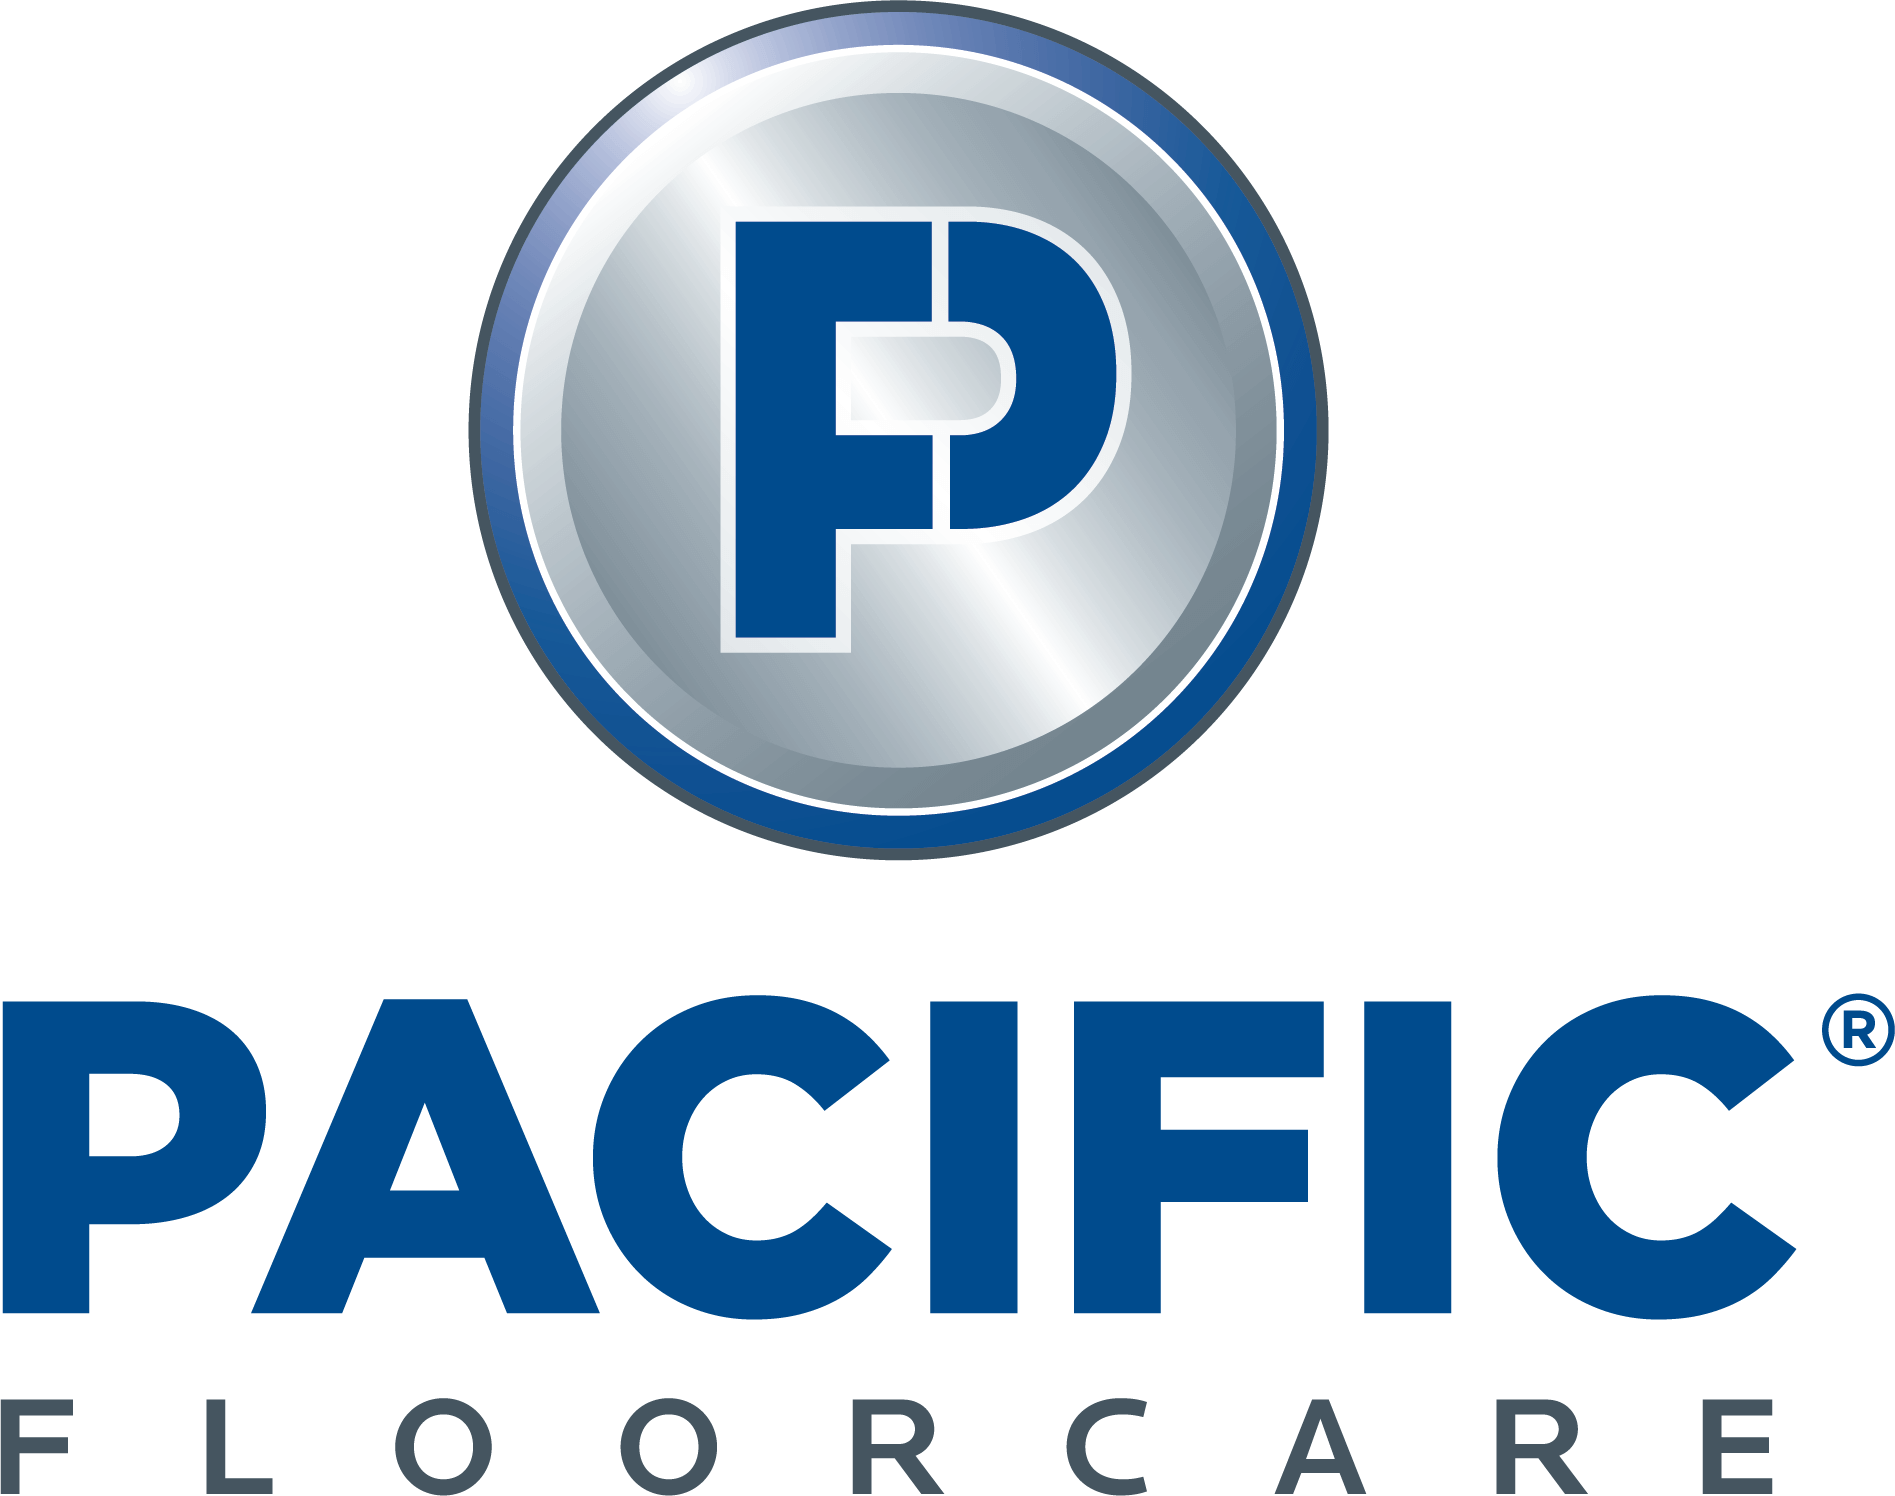 Pacific Floorcare logo design